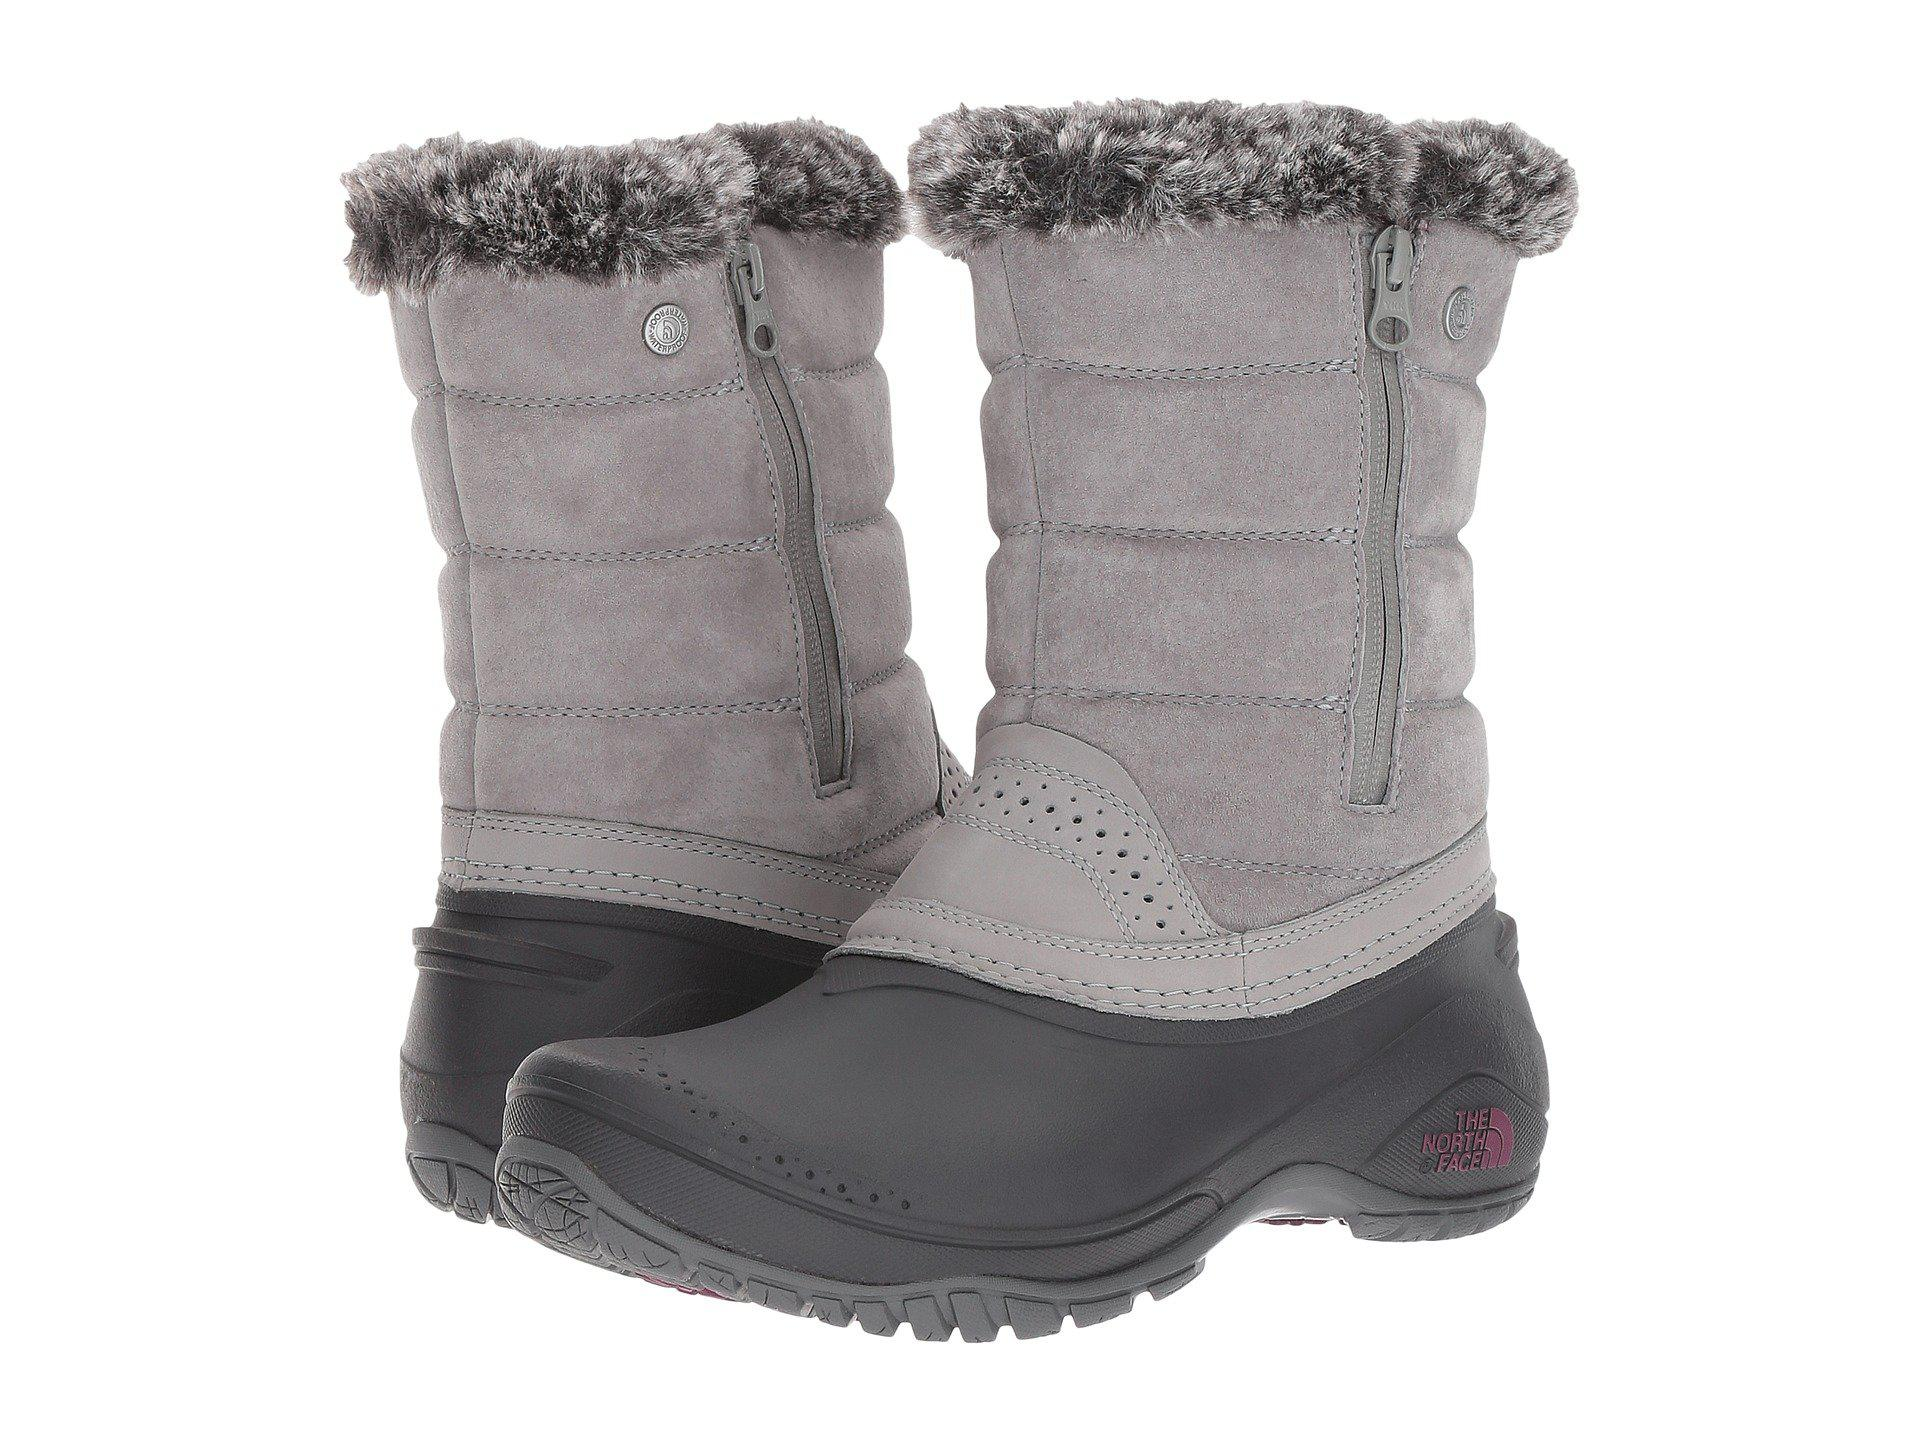 a2c90cc48 The North Face Gray Shellista Iii 200g Waterproof Pull-on Winter Boots